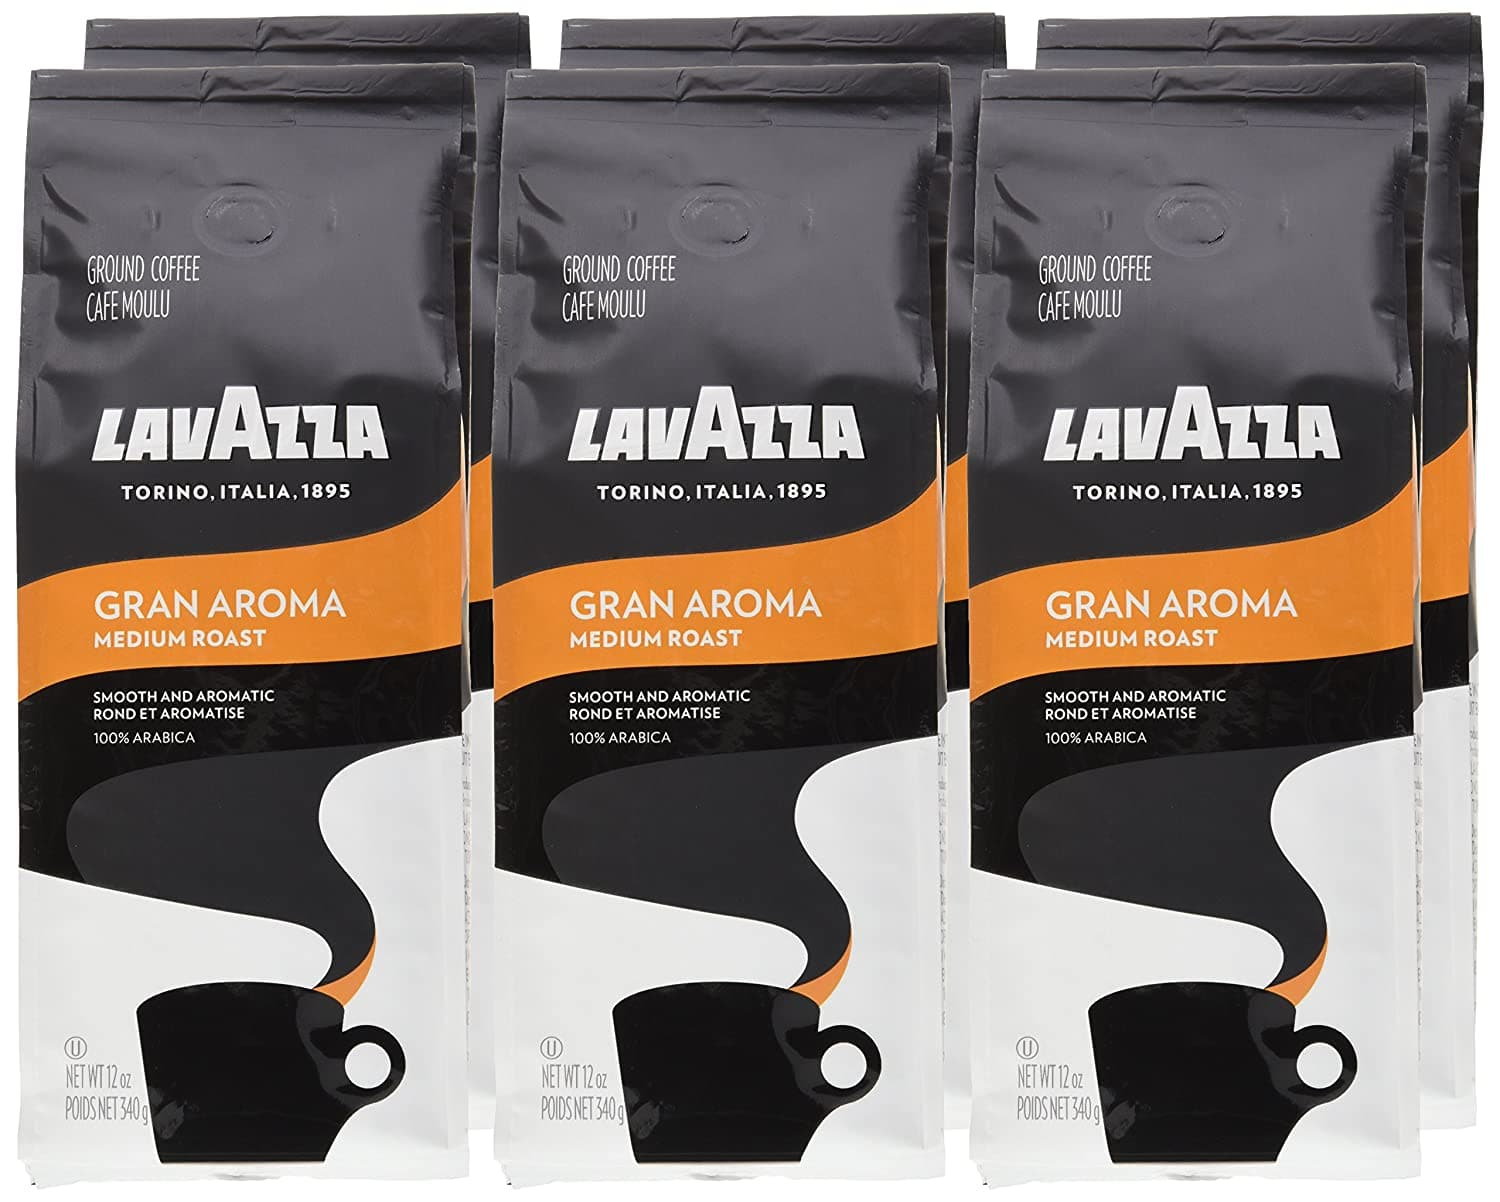 6-Pack 12-Oz Lavazza Gran Aroma Ground Coffee Blend (Light Roast) $25 ($4.17 each) w/ S&S + Free Shipping